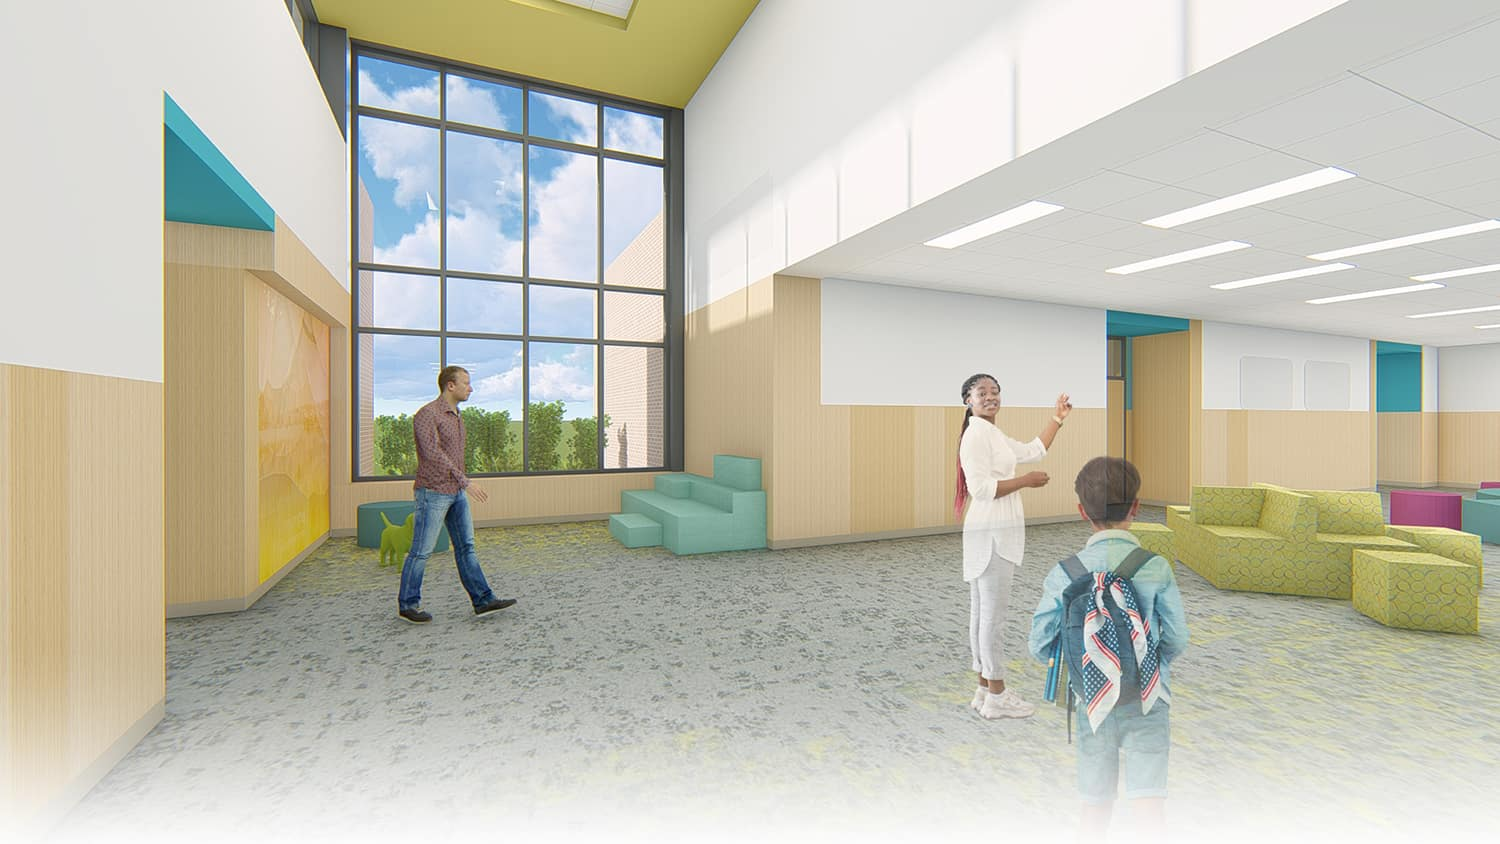 Rendering of a student pod space with floor to ceiling window and playful furniture.